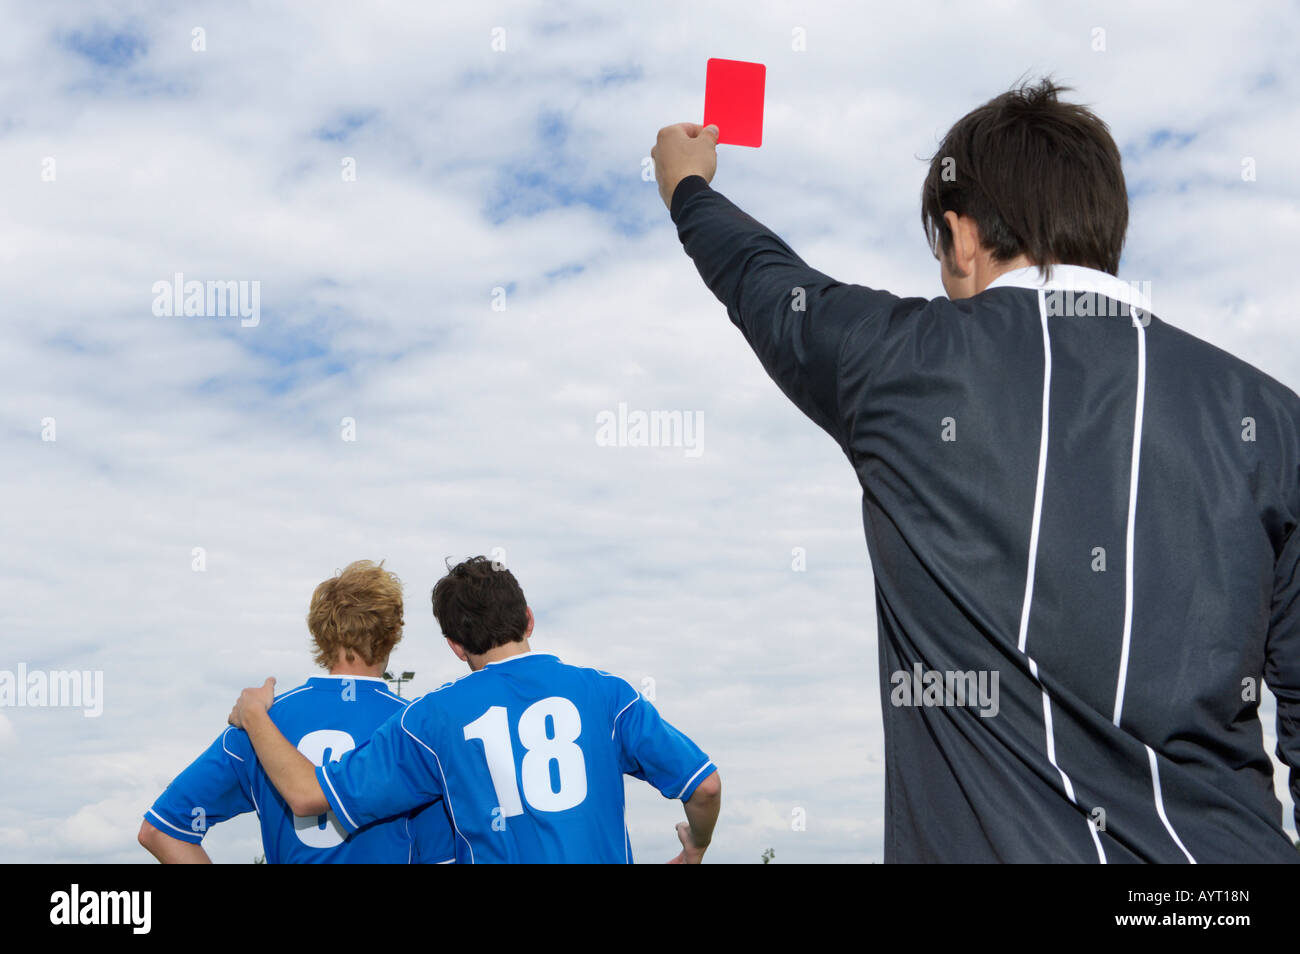 Referee showing red card to kicker - Stock Image